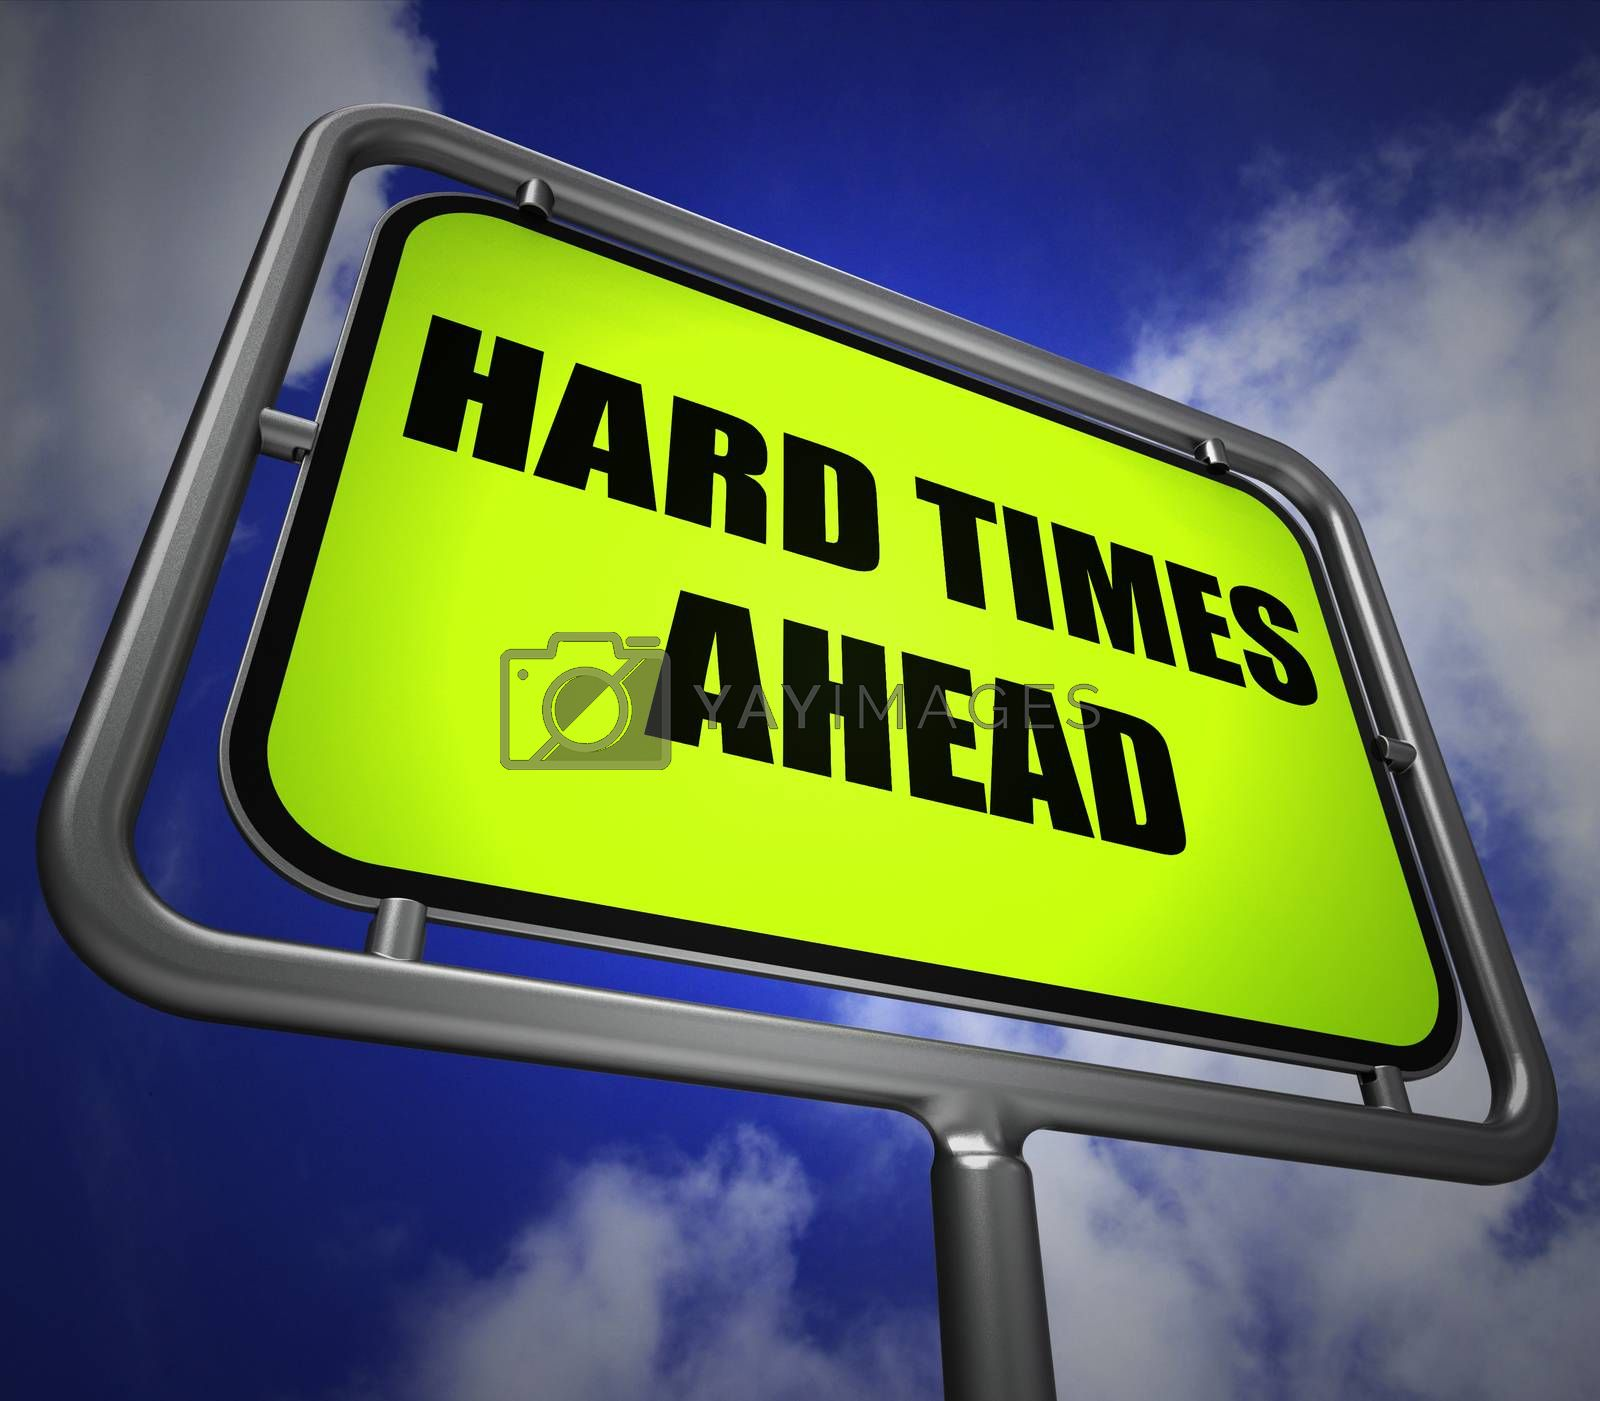 Hard Times Ahead Signpost Means Tough Hardship and Difficulties  by stuartmiles